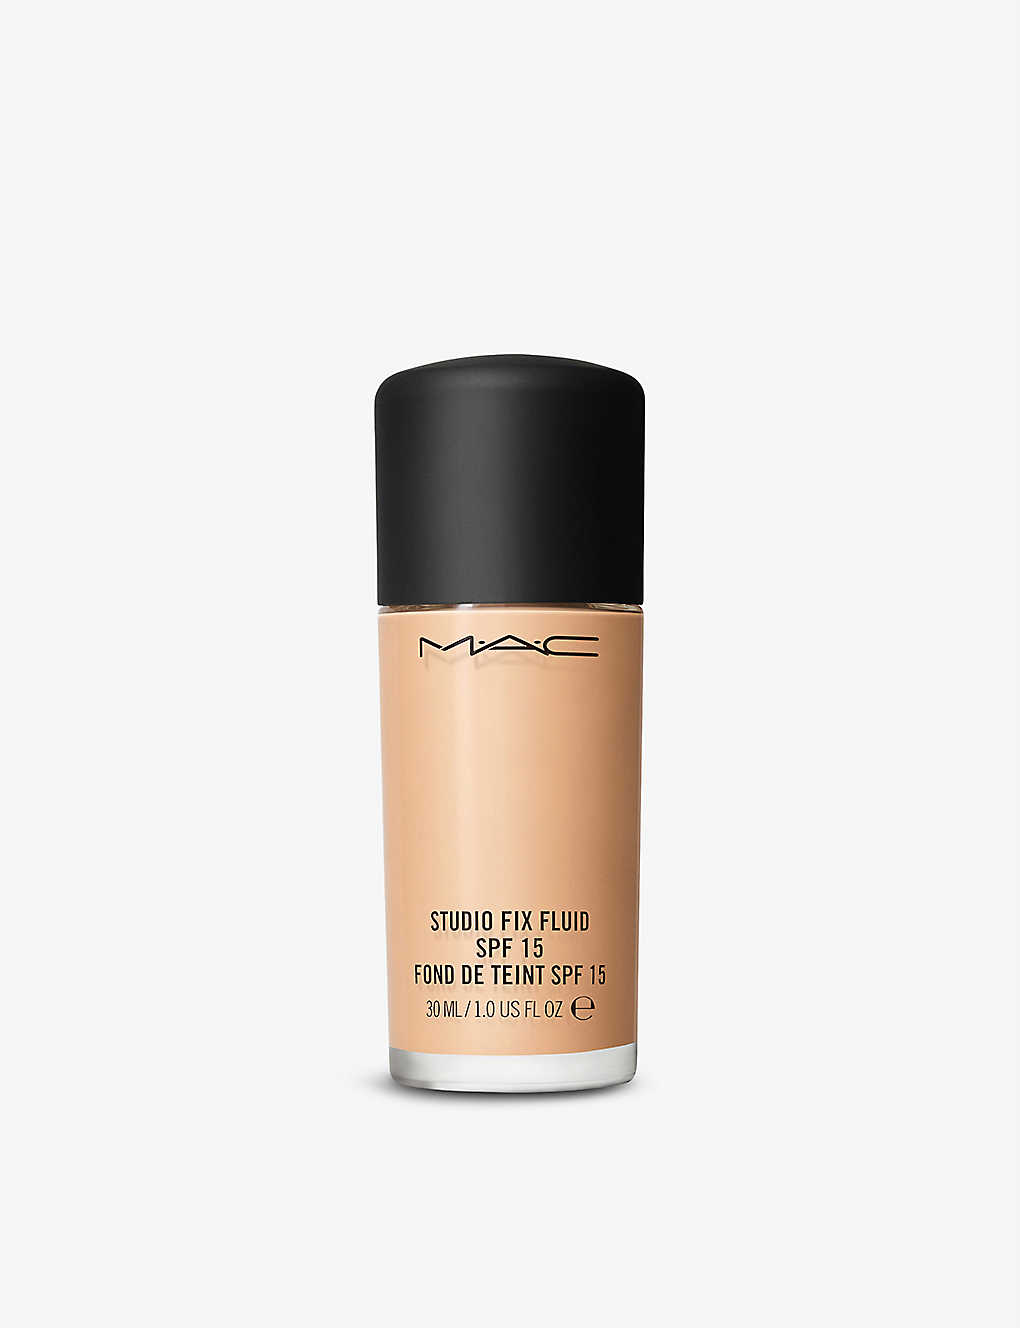 Studio Fix Fluid SPF 15 foundation 30ml